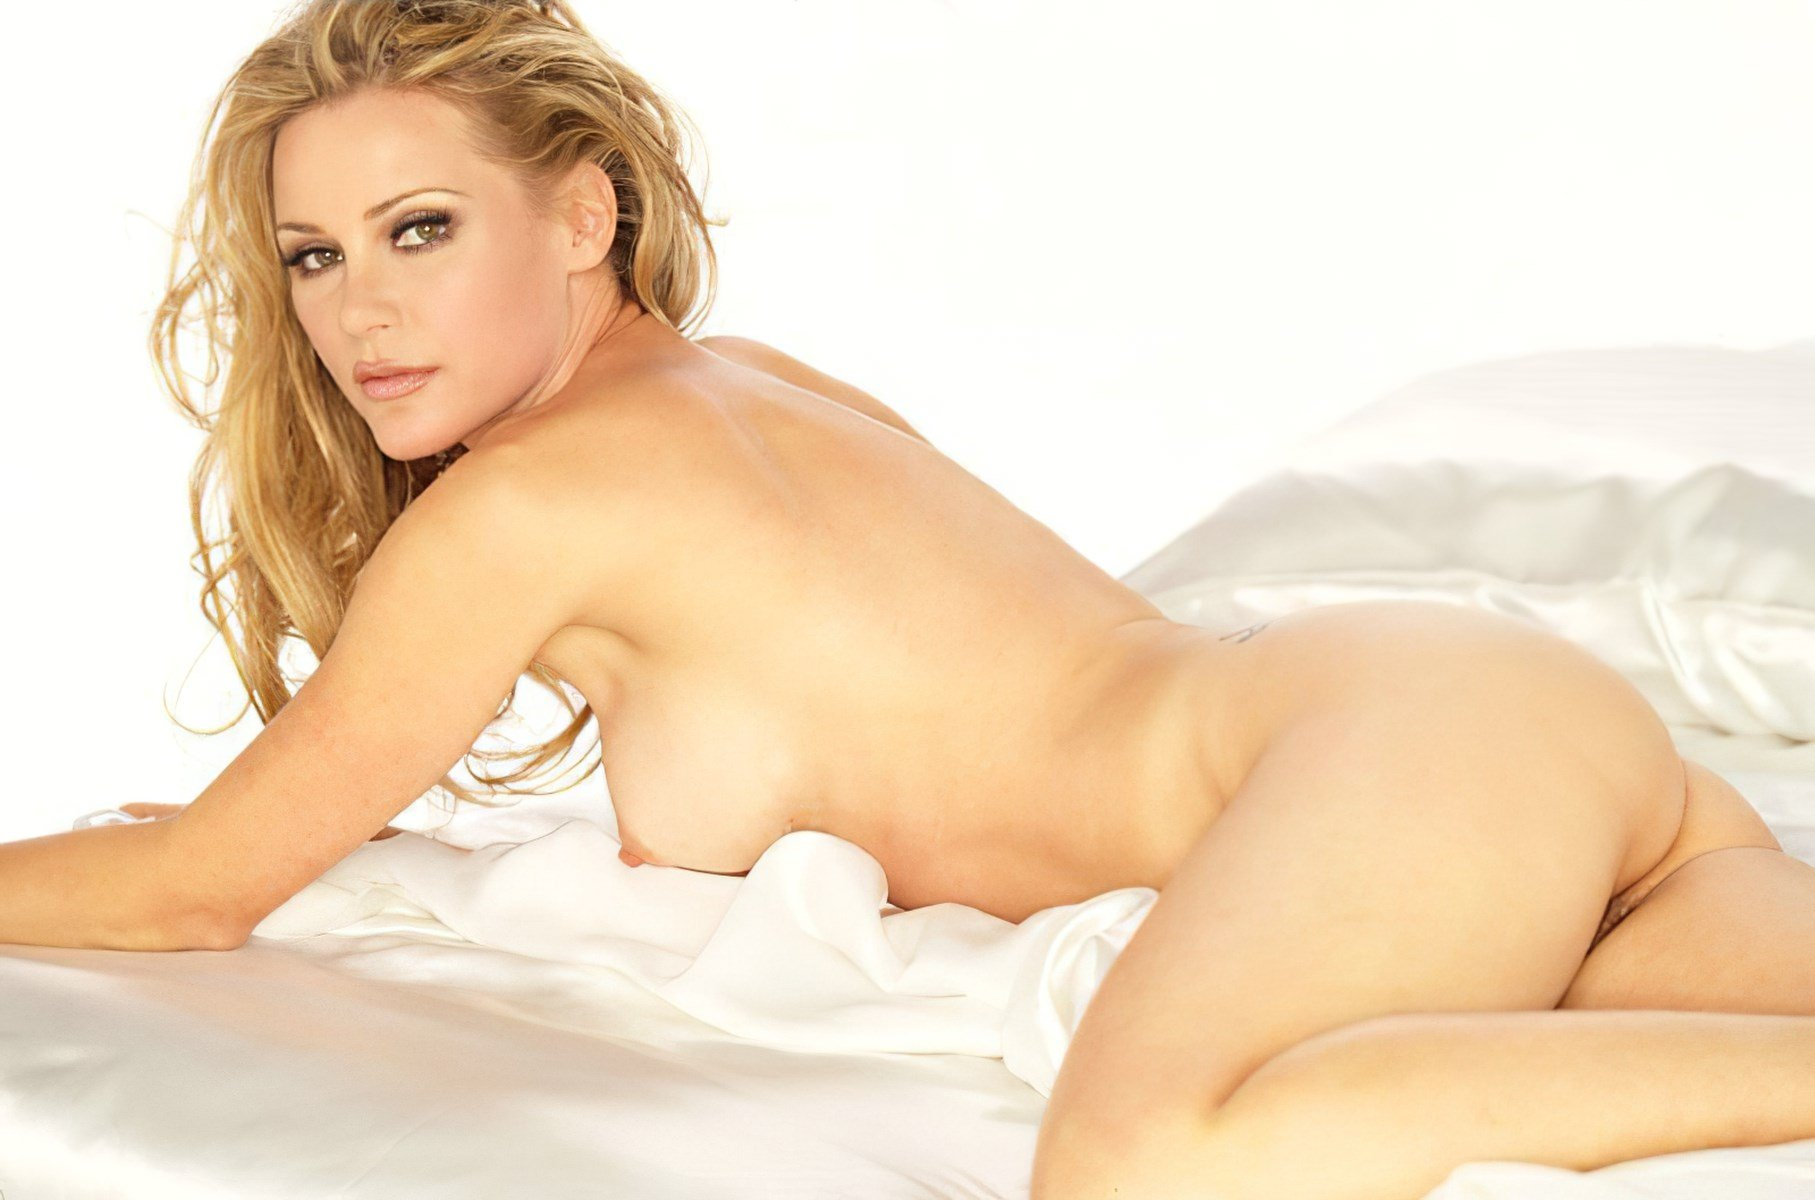 Michelle Pfeiffer Nude Scene Remastered And A.I. Enhanced